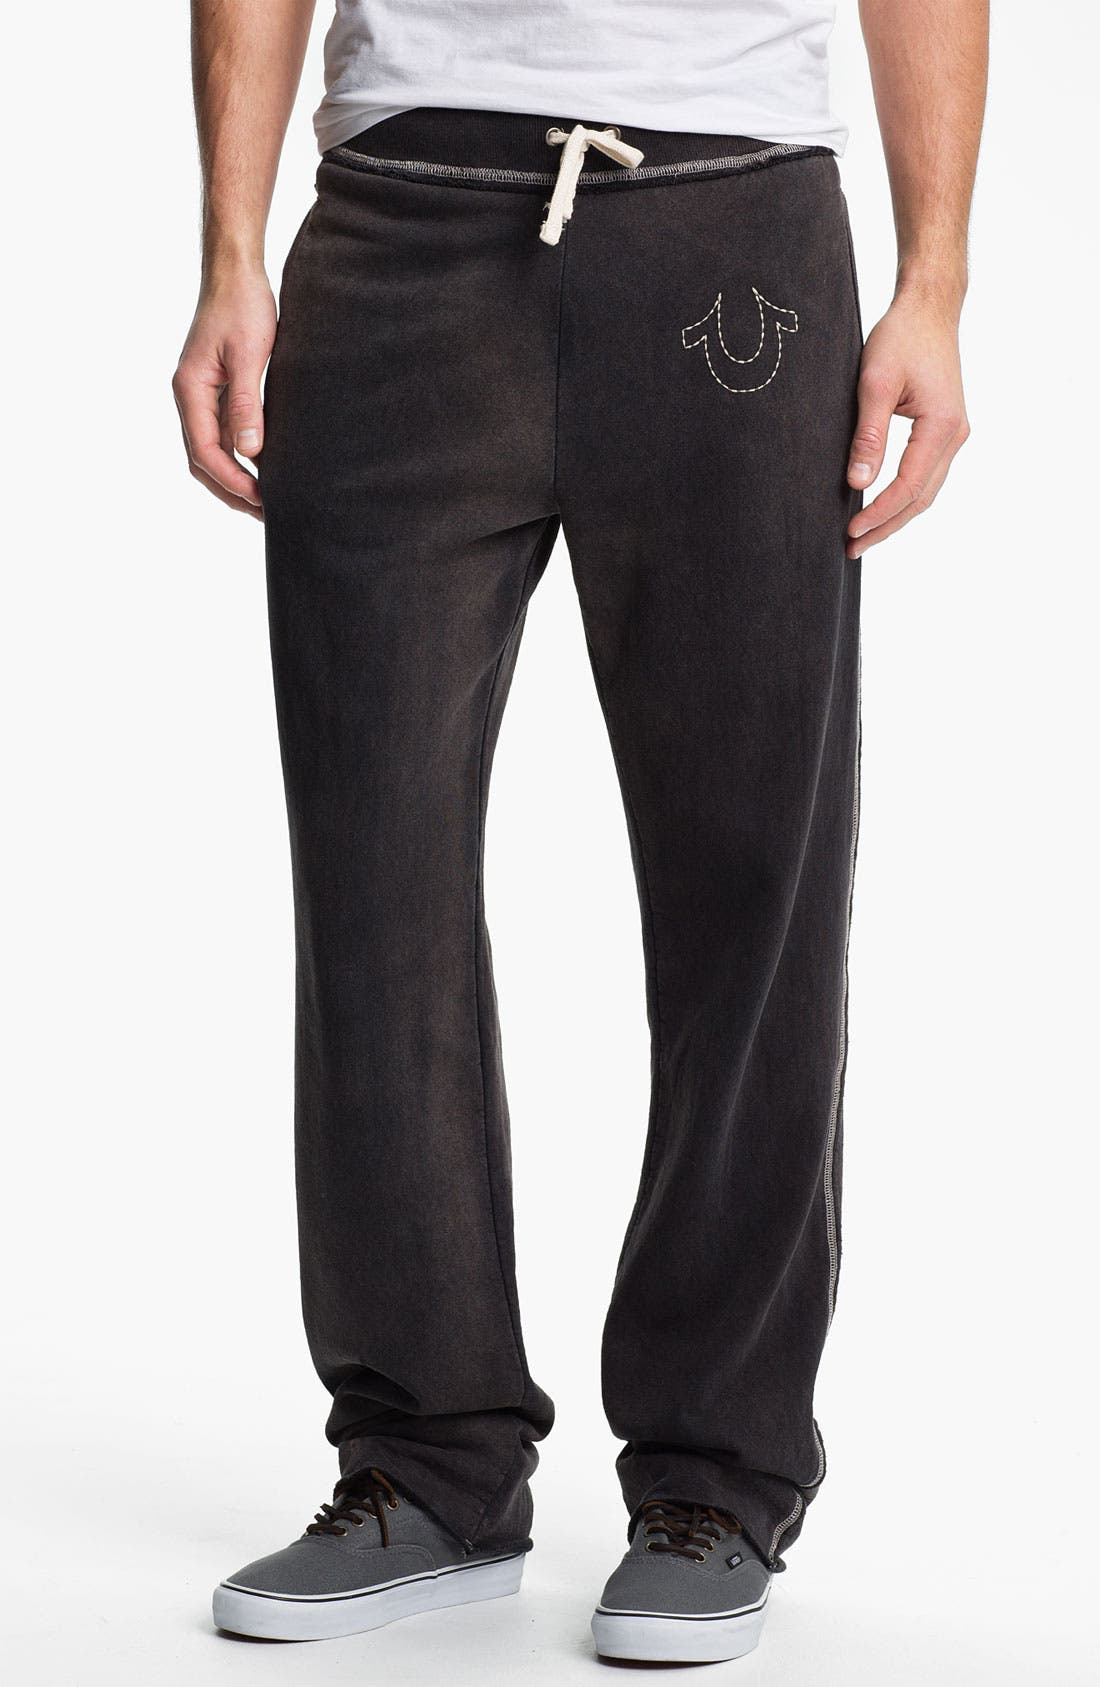 Main Image - True Religion Brand Jeans 'Built to Last' Athletic Pants